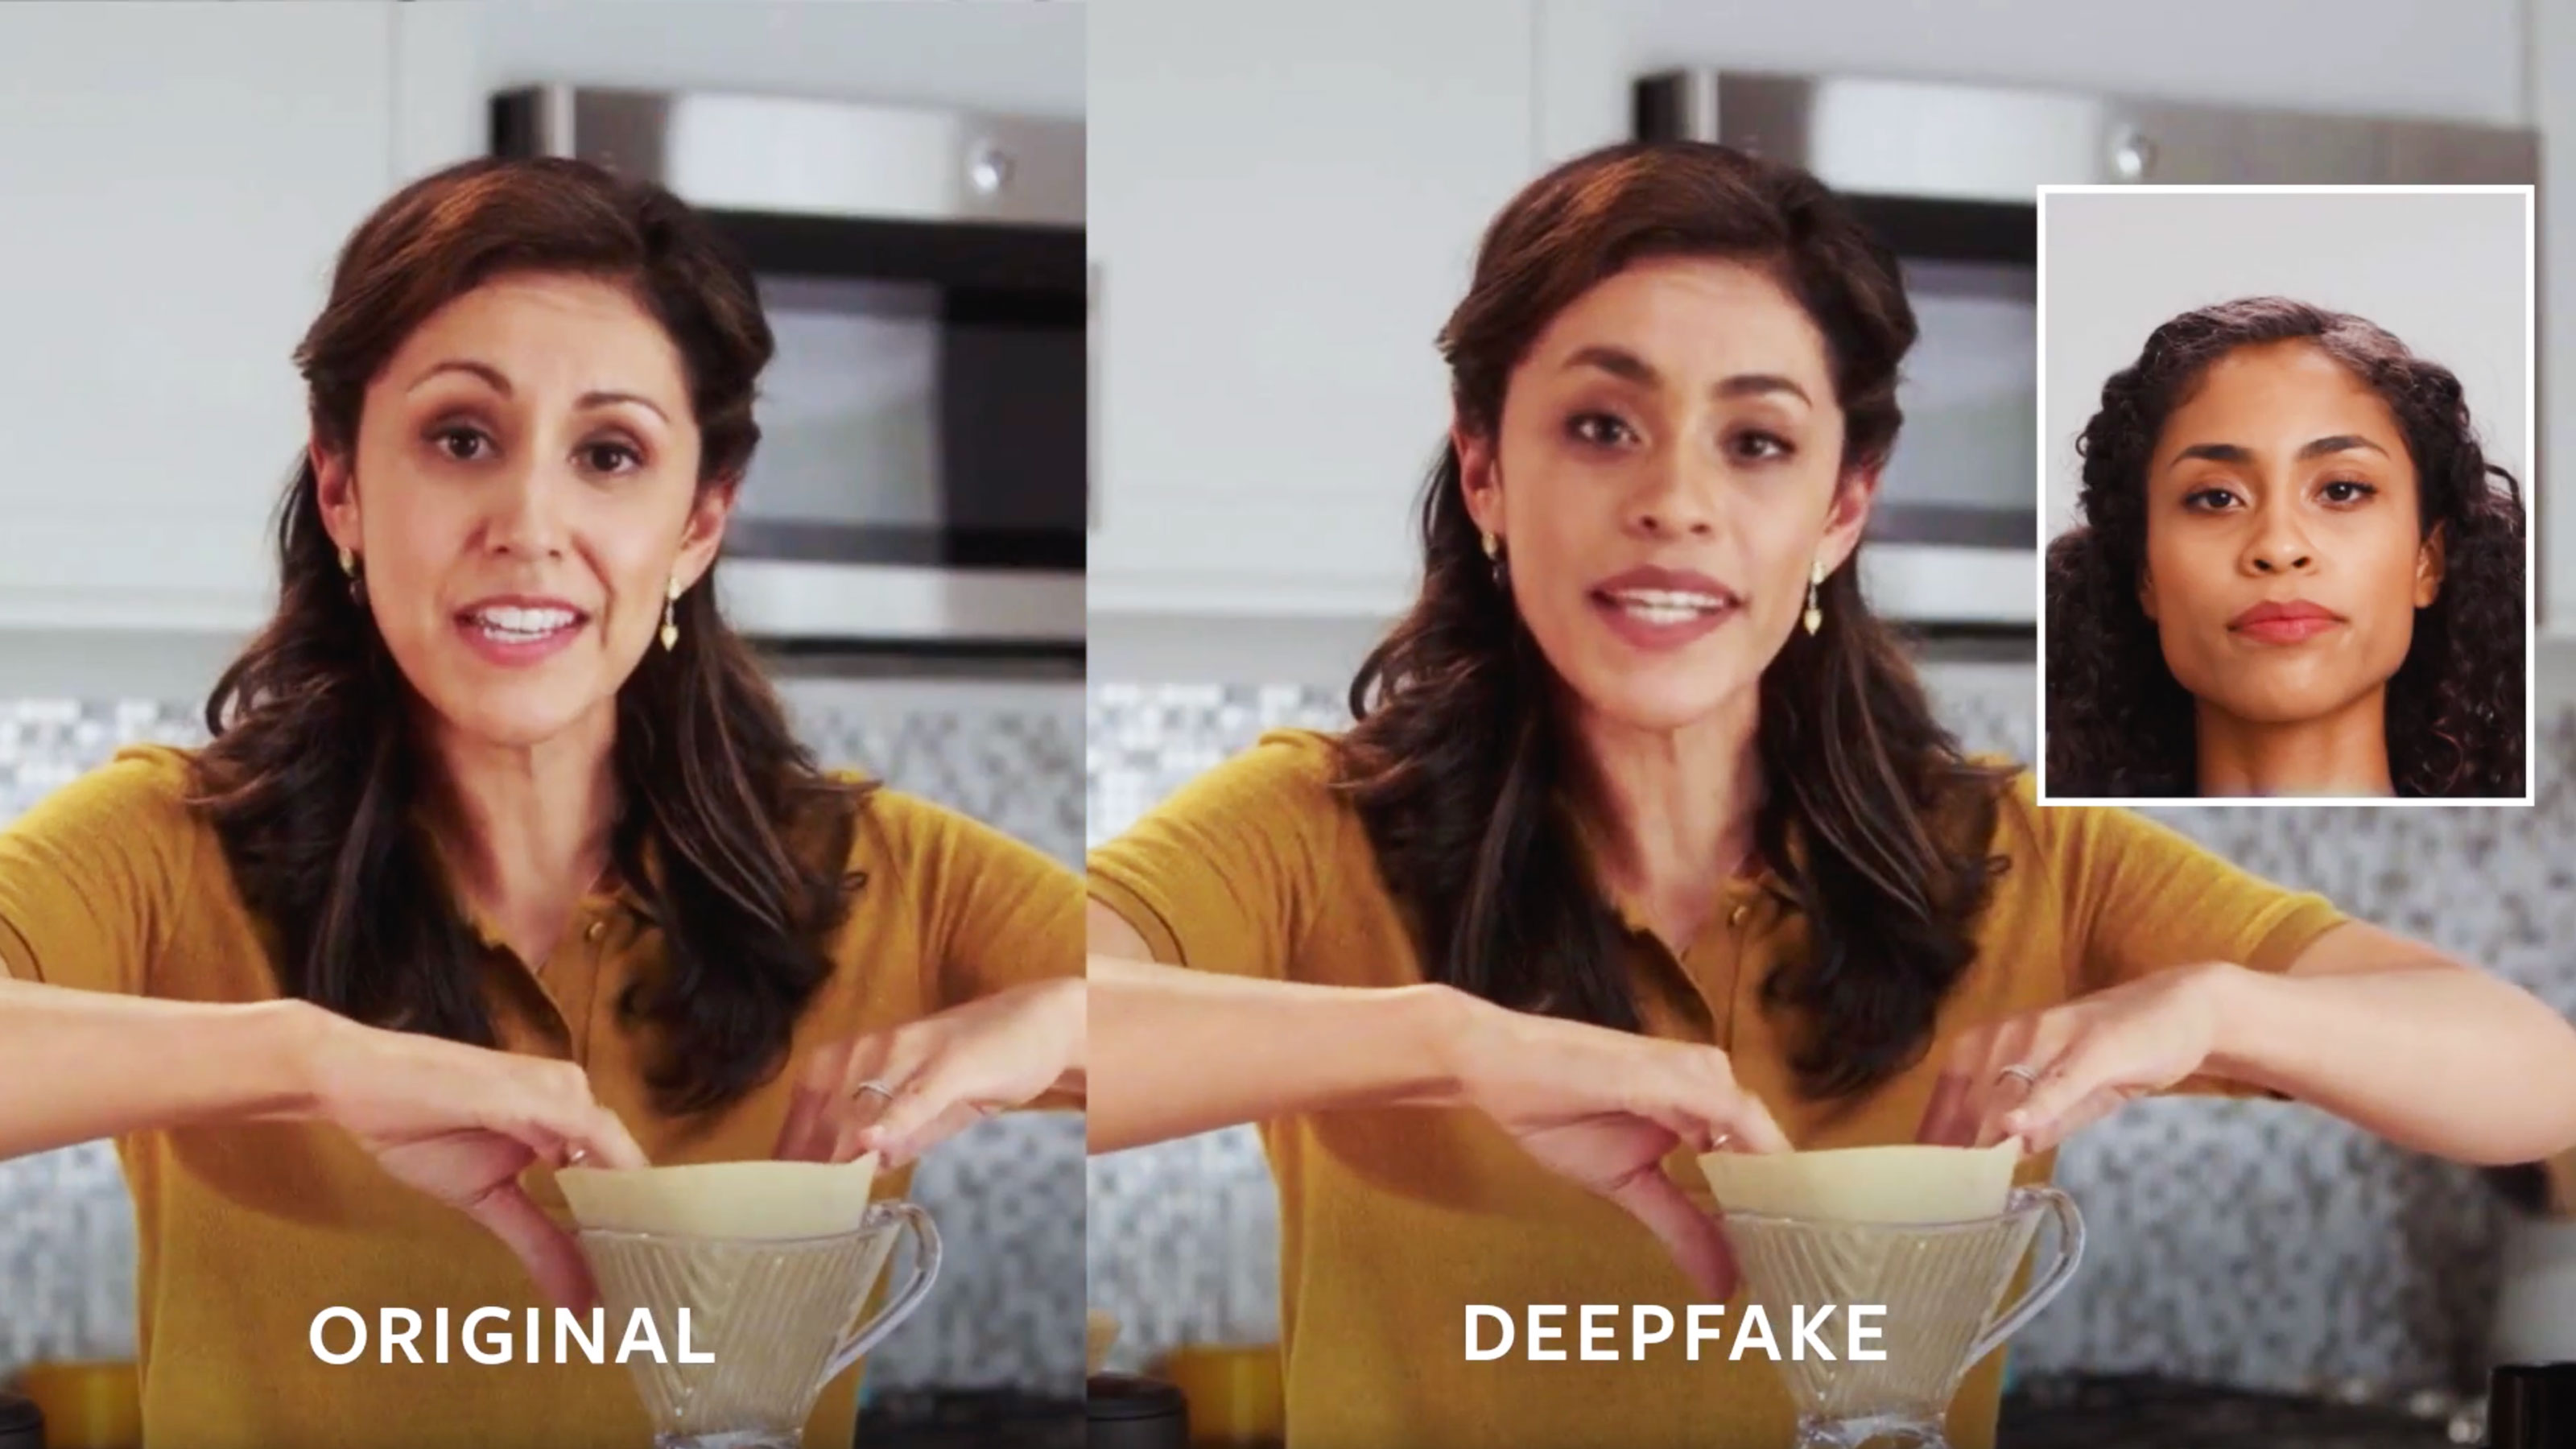 Facebook is making its own AI deepfakes to head off a